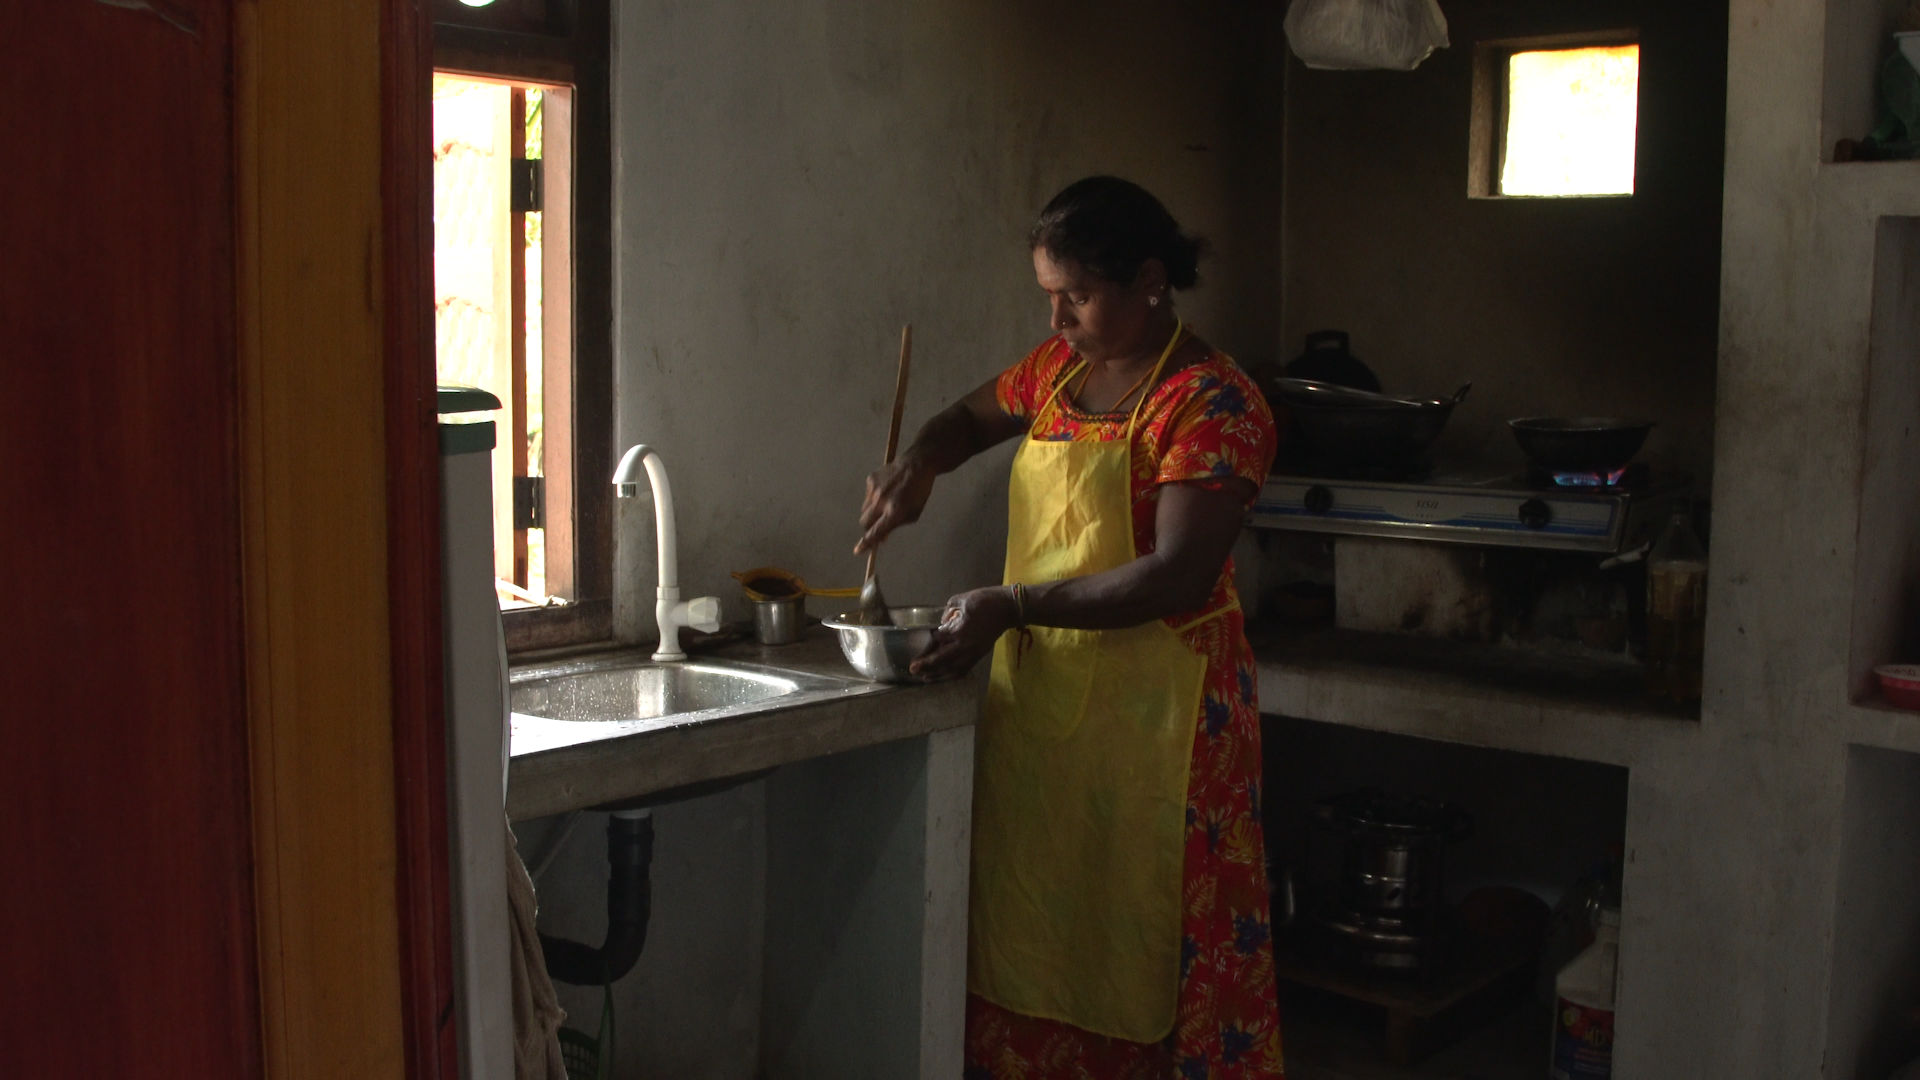 Vasuki's Story - When she moved out of the internment camps, Vasuki started catering in order to make a living and send her son to school. Despite losing her leg in a shell attack, she now mentors others amputees helping them stay positive and develop coping mechanisms.